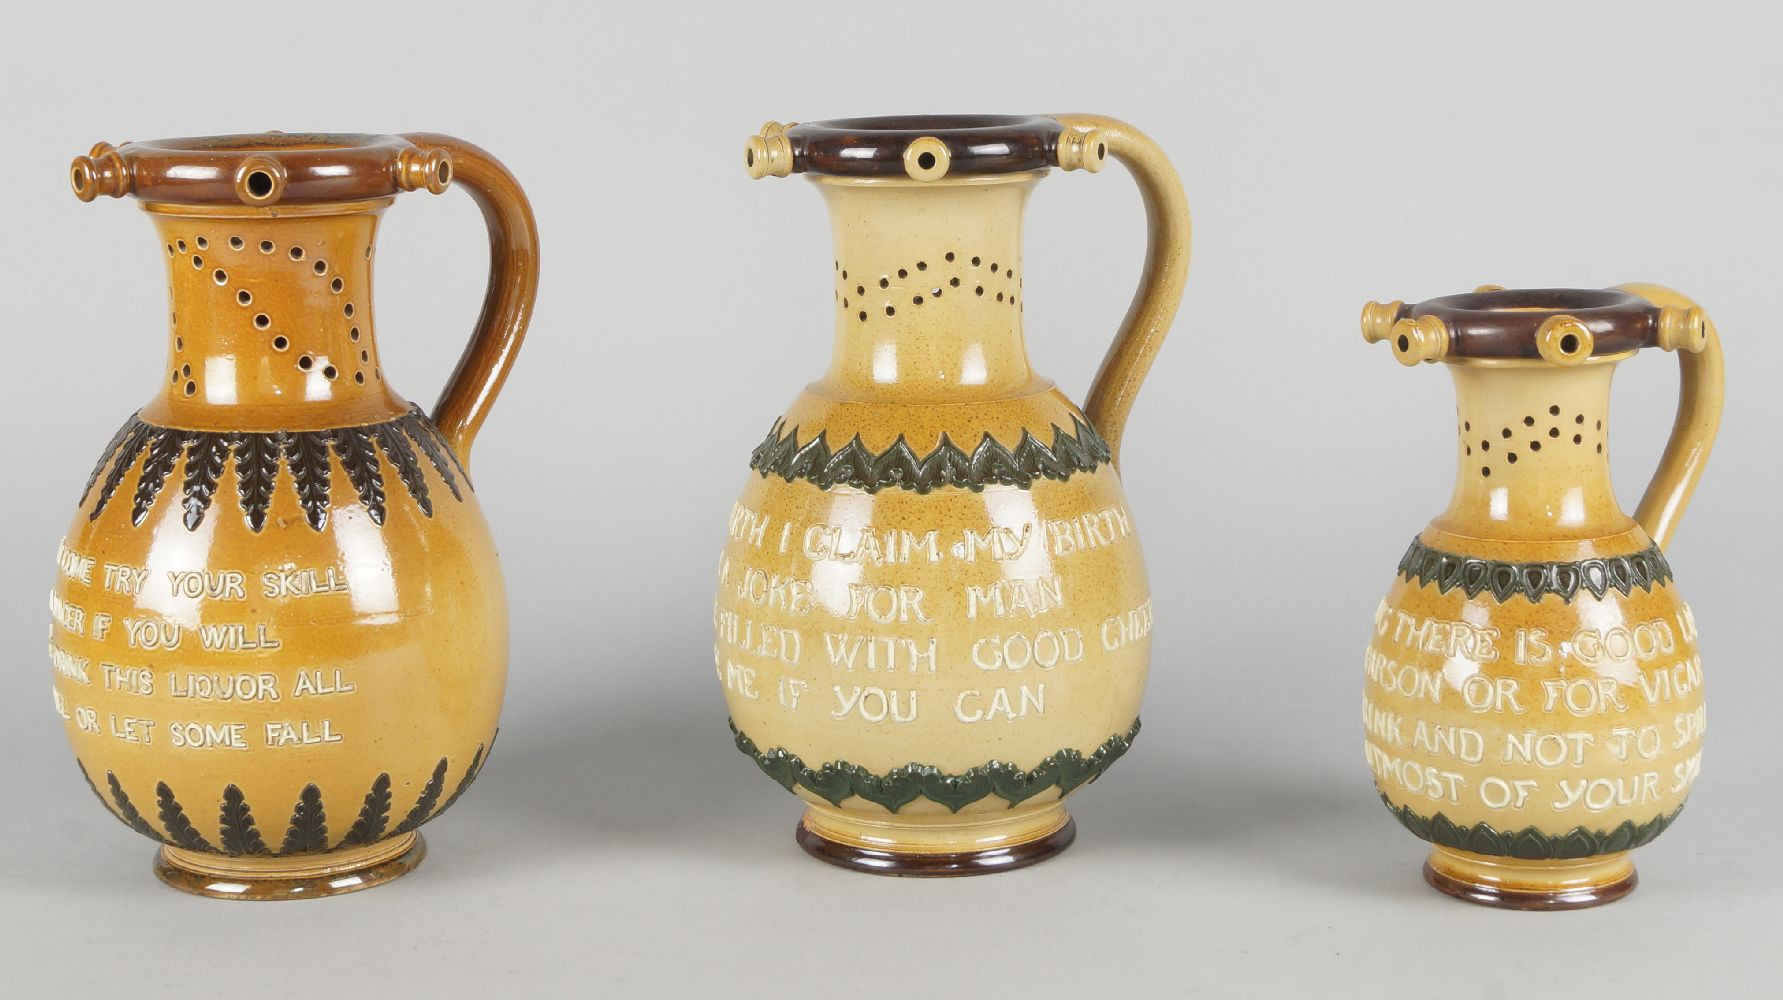 doulton lambeth vase of three doulton lambeth stoneware puzzle jugs each with a different for lot 95 three doulton lambeth stoneware puzzle jugs each with a different motto in